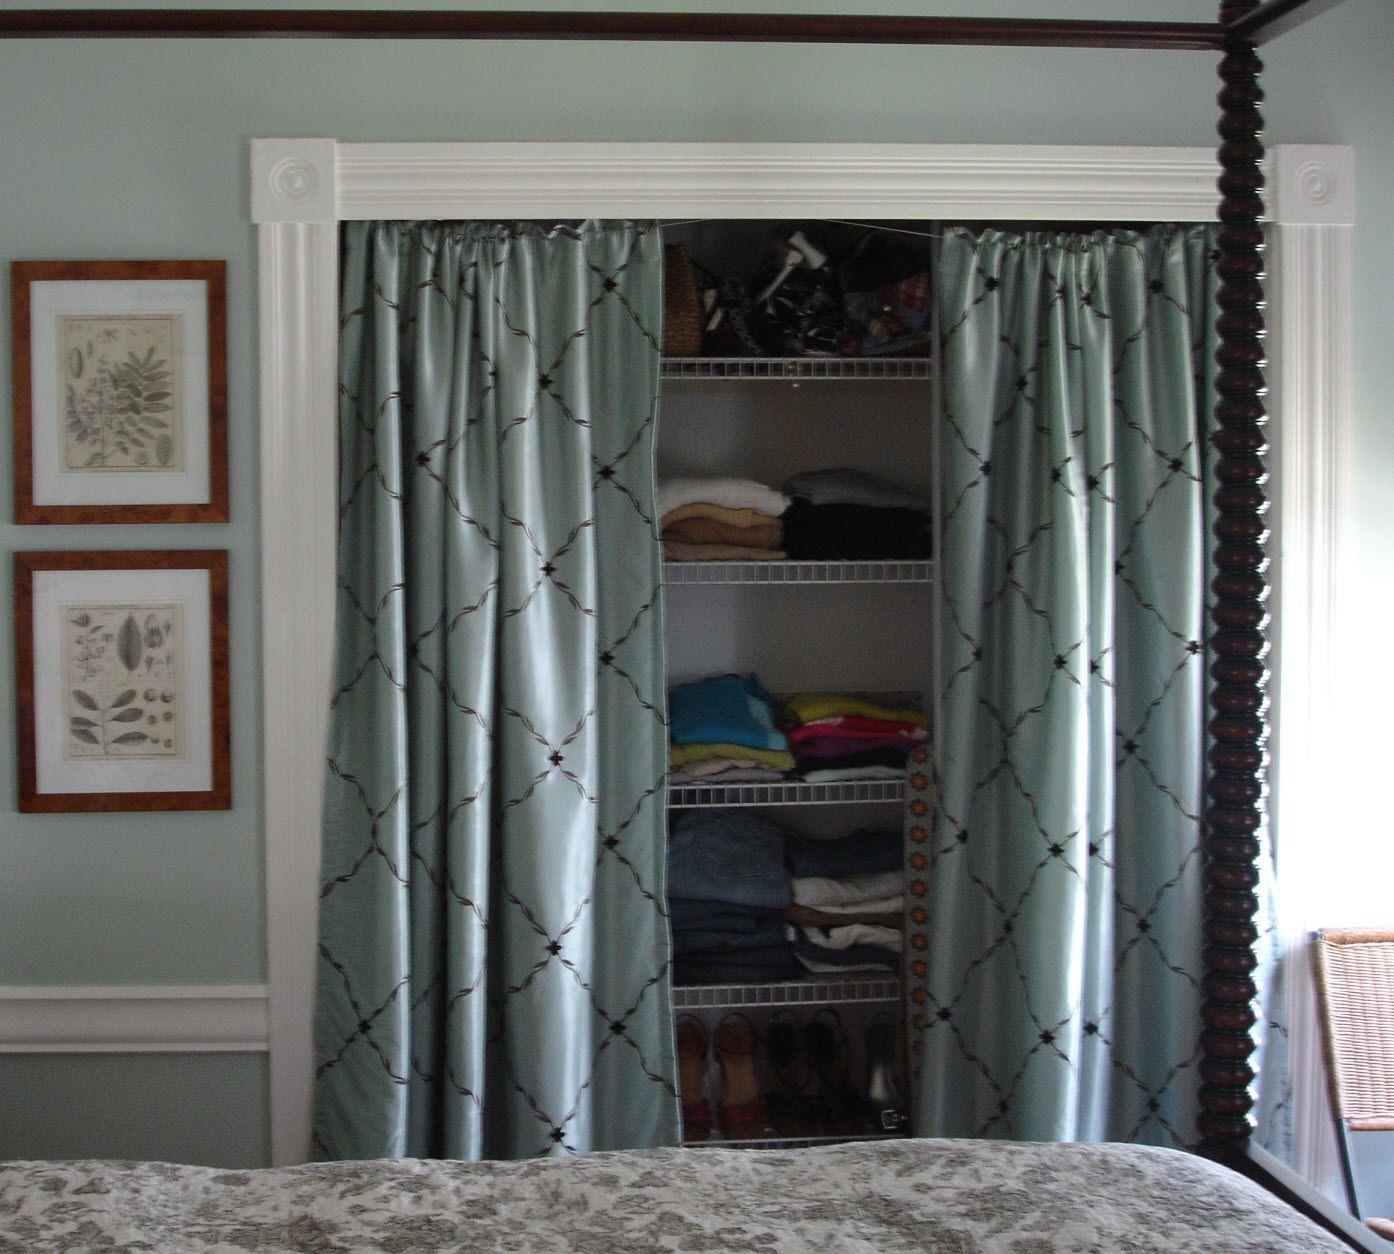 Cottage Bedroom Closets Ditched The Closet Doors And Instead Of Replacing Them With Bifold